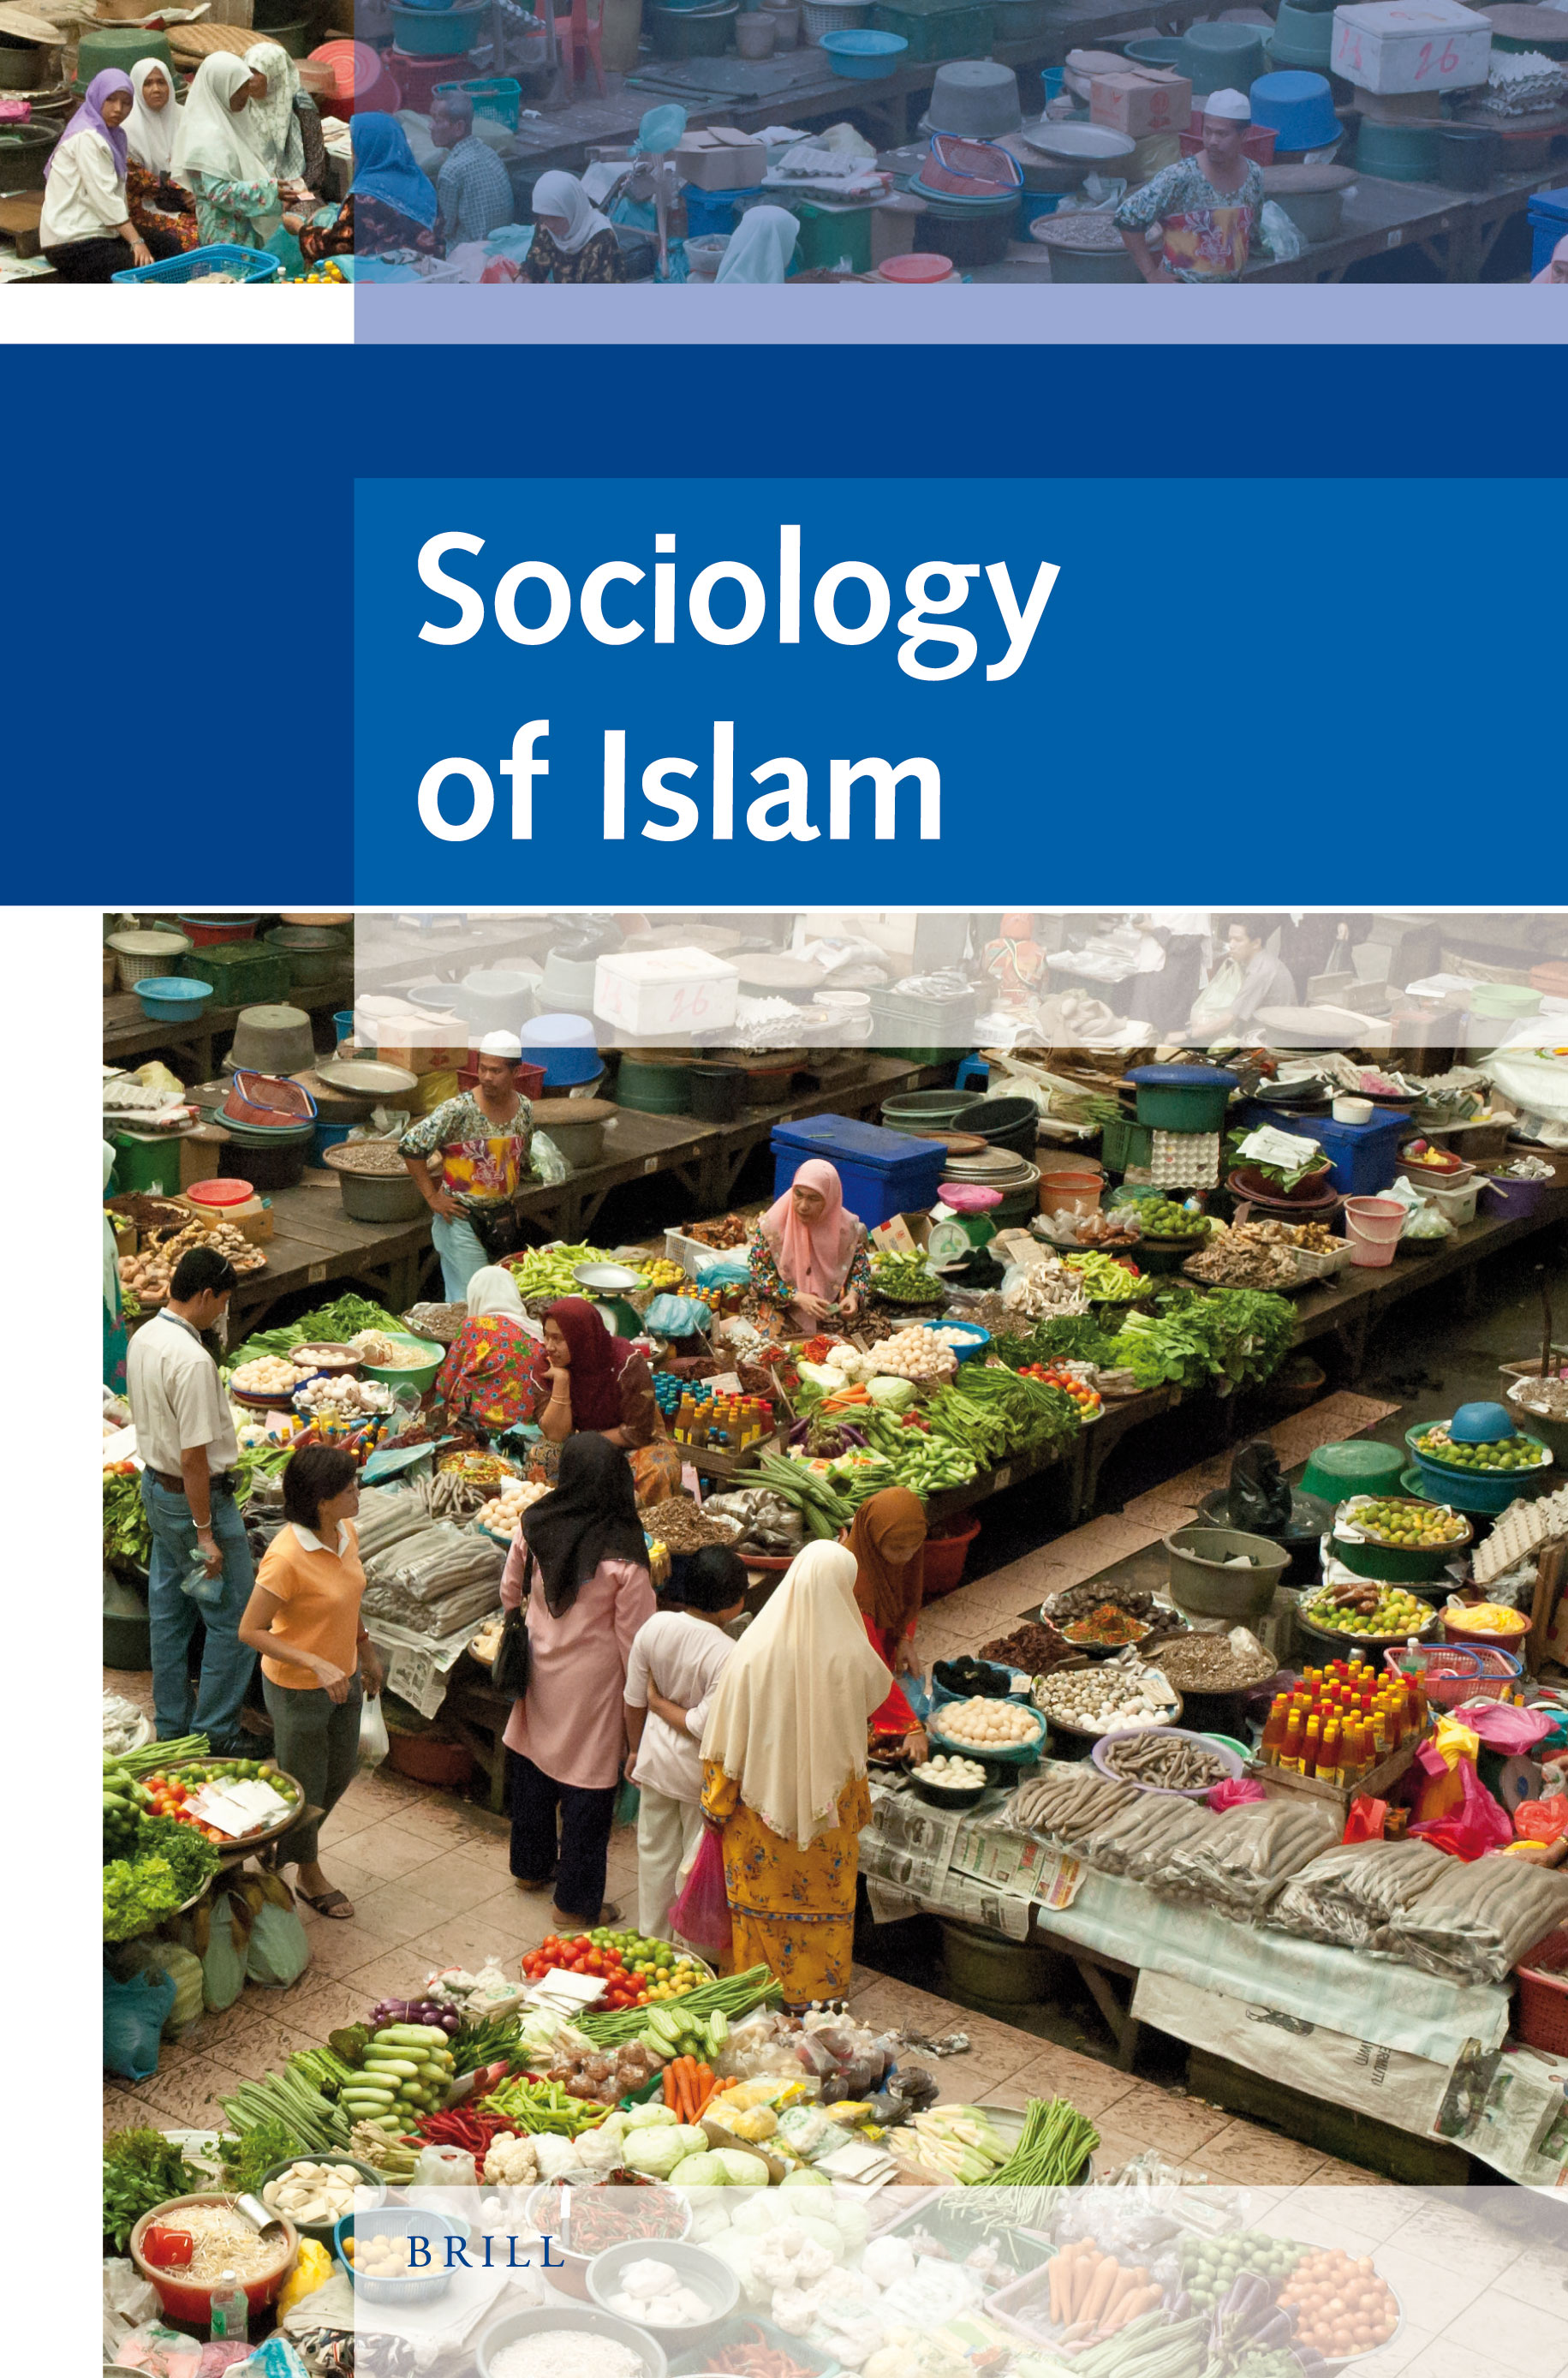 Sociology of Islam